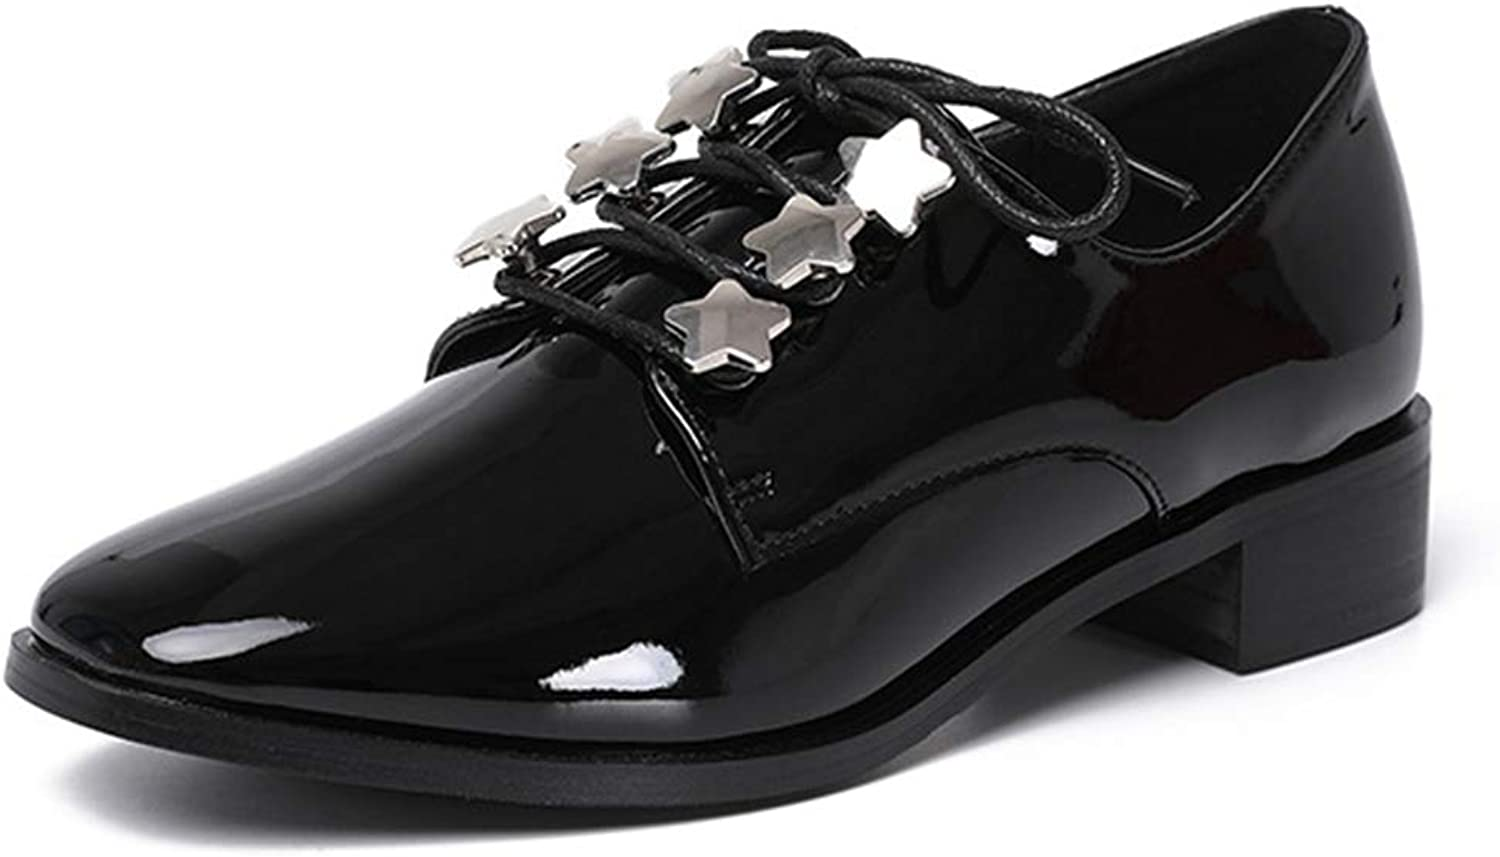 CYBLING Women's Patent Leather Oxfords Flats Star Design Low Heel Lace Up Dress shoes